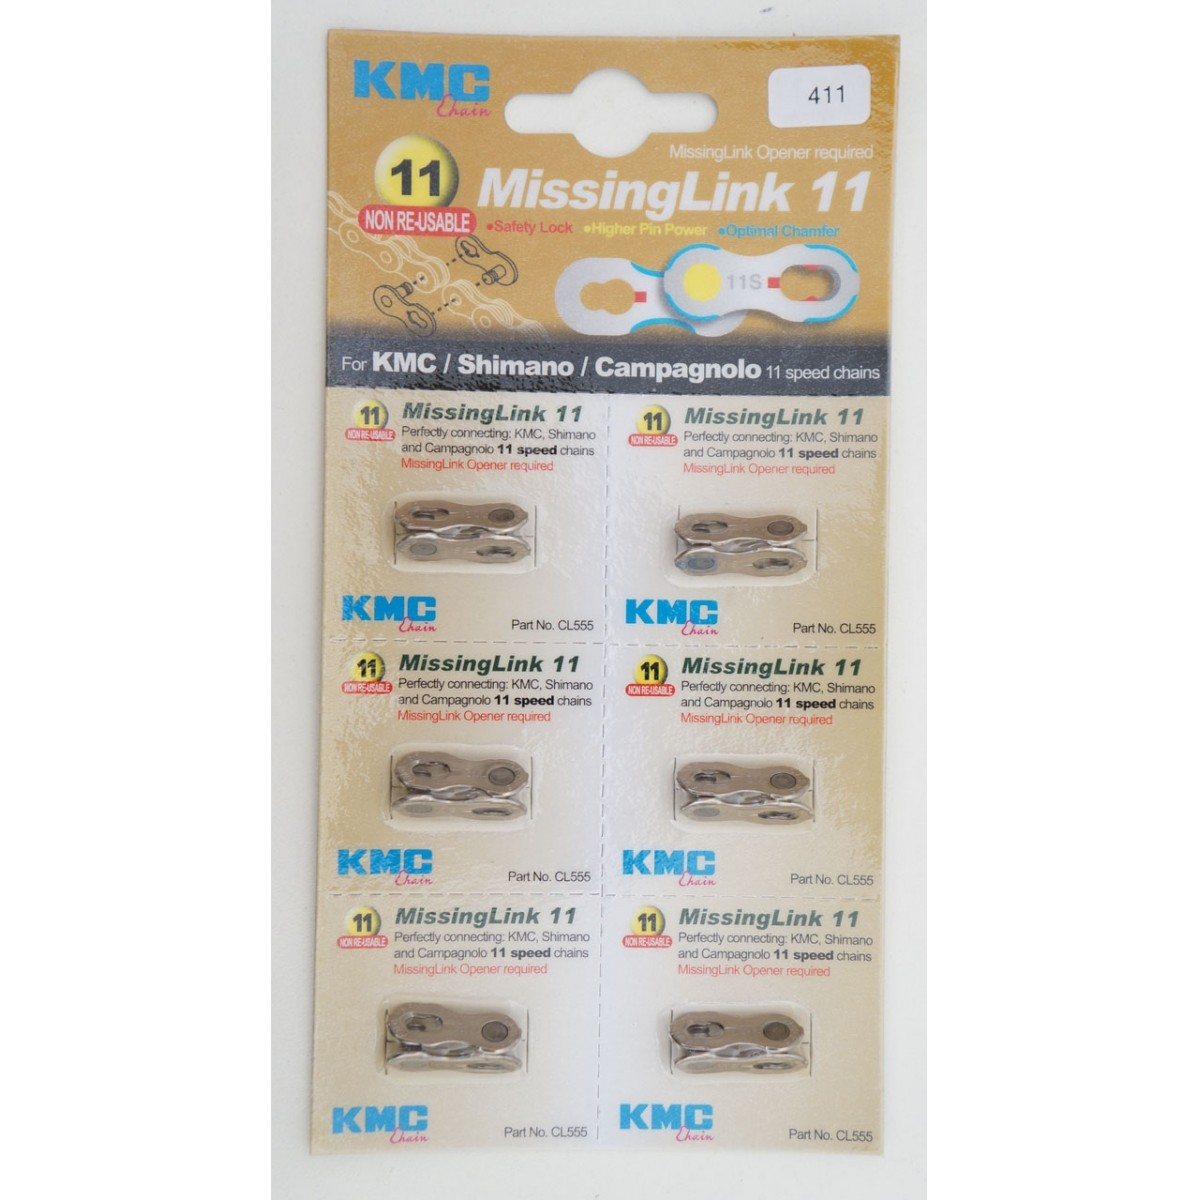 Elo mestre Missing Link KMC powerlink corrente 11v com 6 unidades